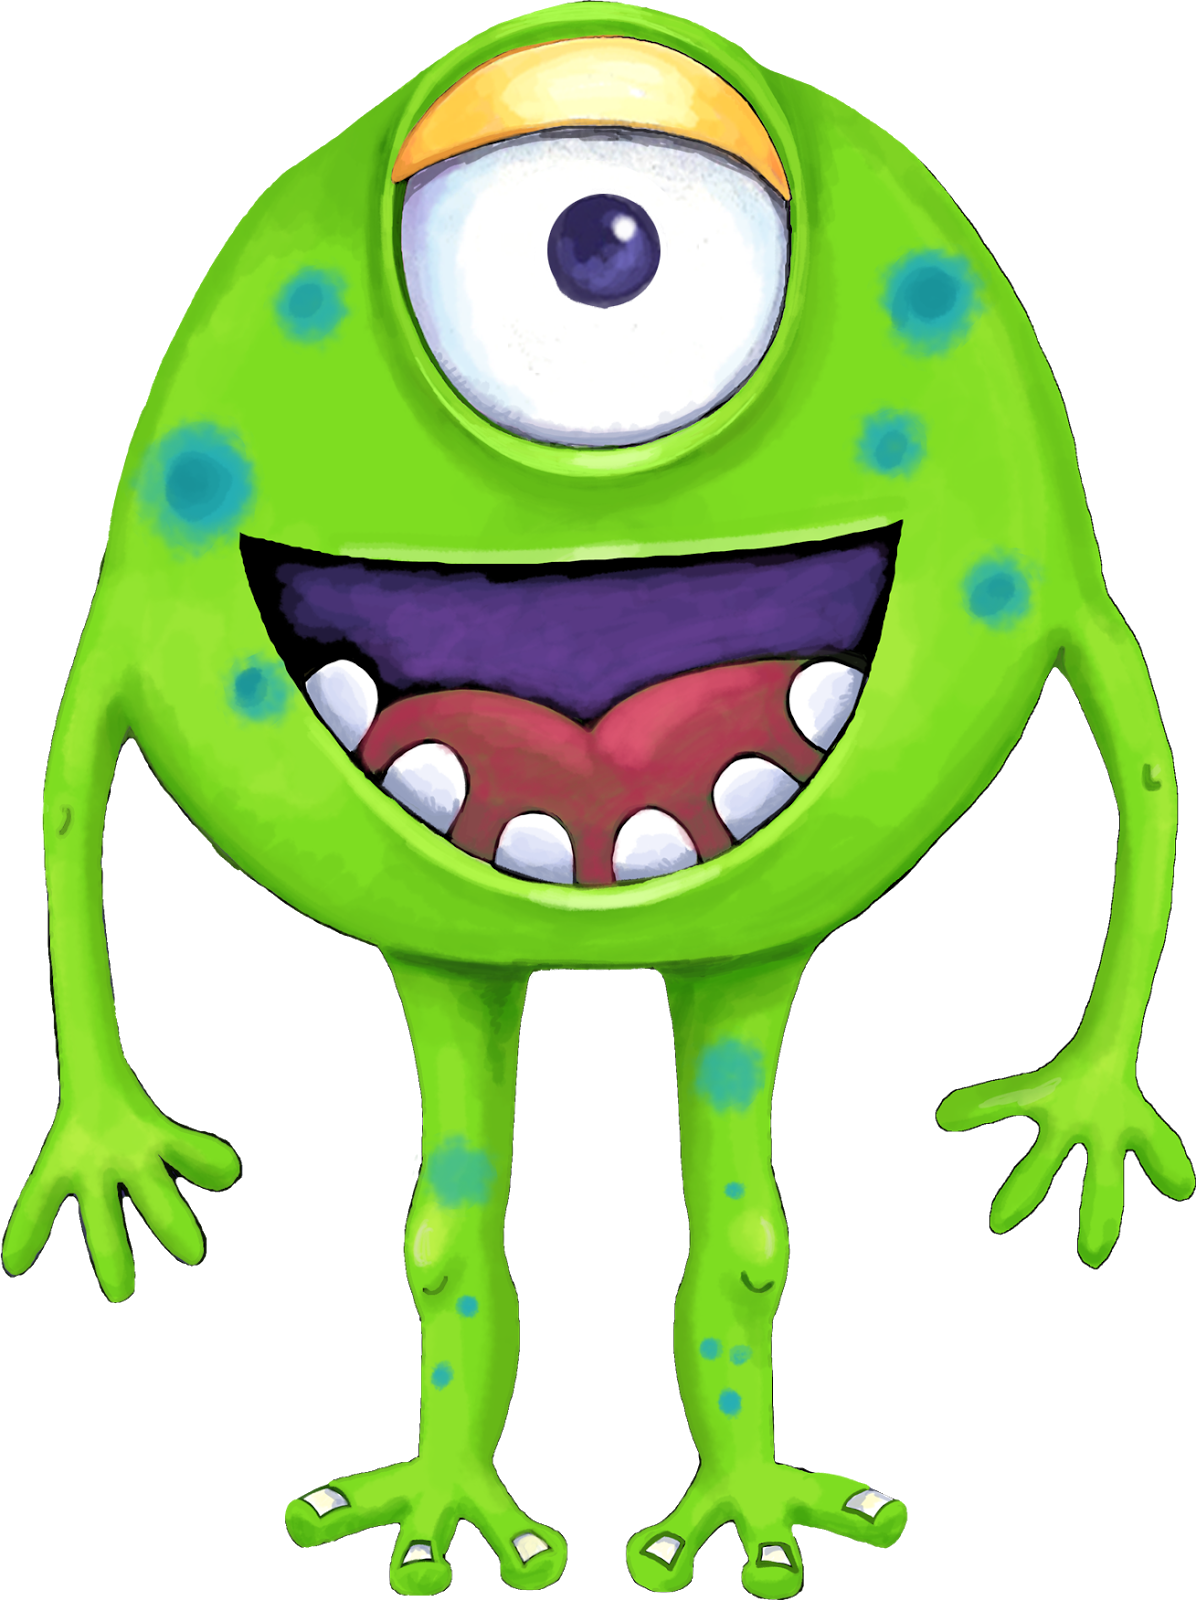 Your Free Art: Cute Blue, Purple and Green Cartoon Alien Monsters.